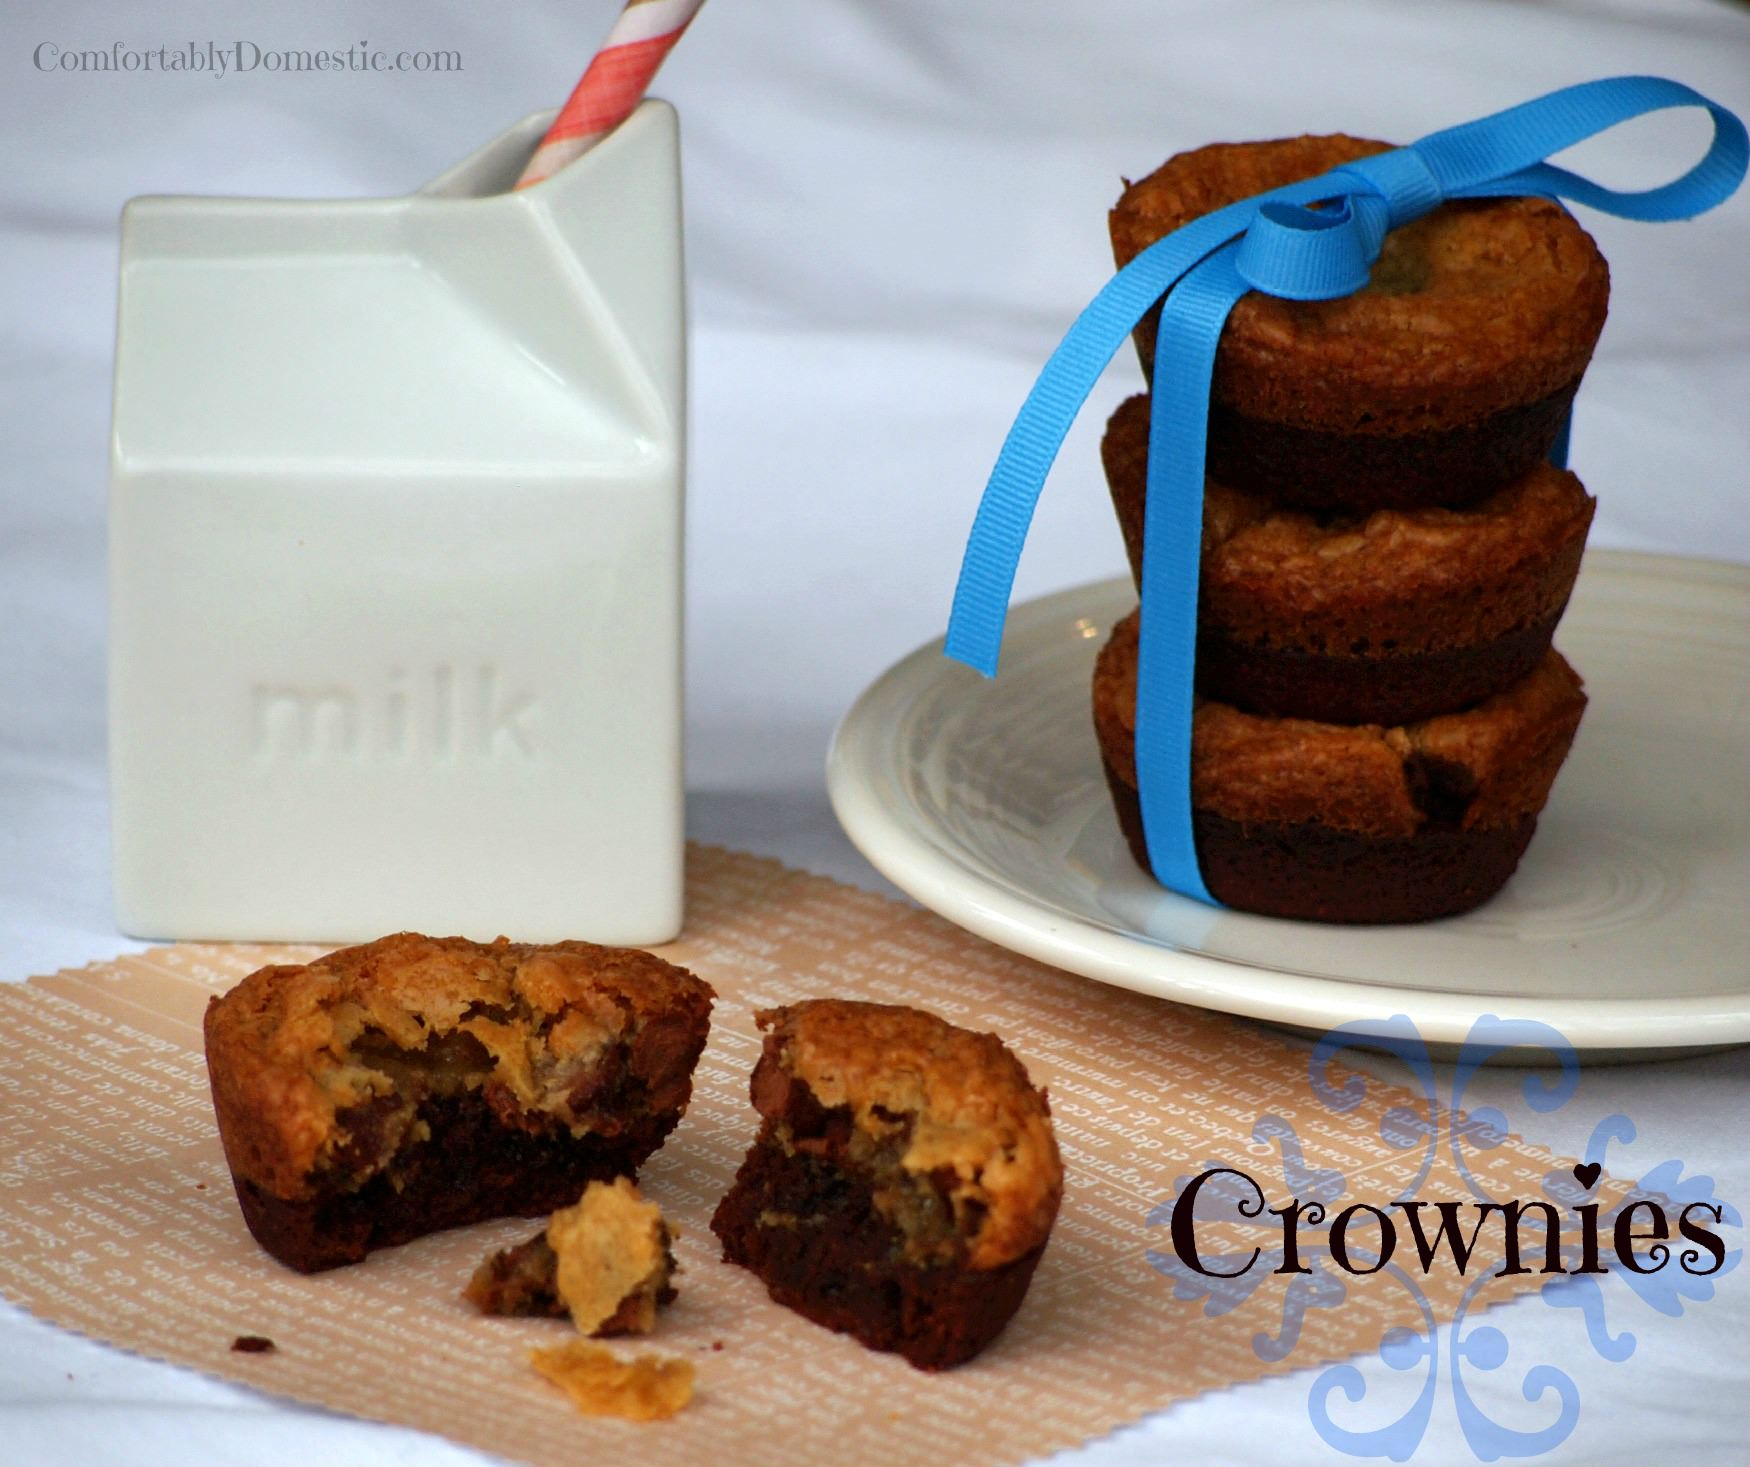 Crownies are a delicious dessert combination of soft chocolate chip cookies and fudgy, chewy brownies. | ComfortablyDomestic.com